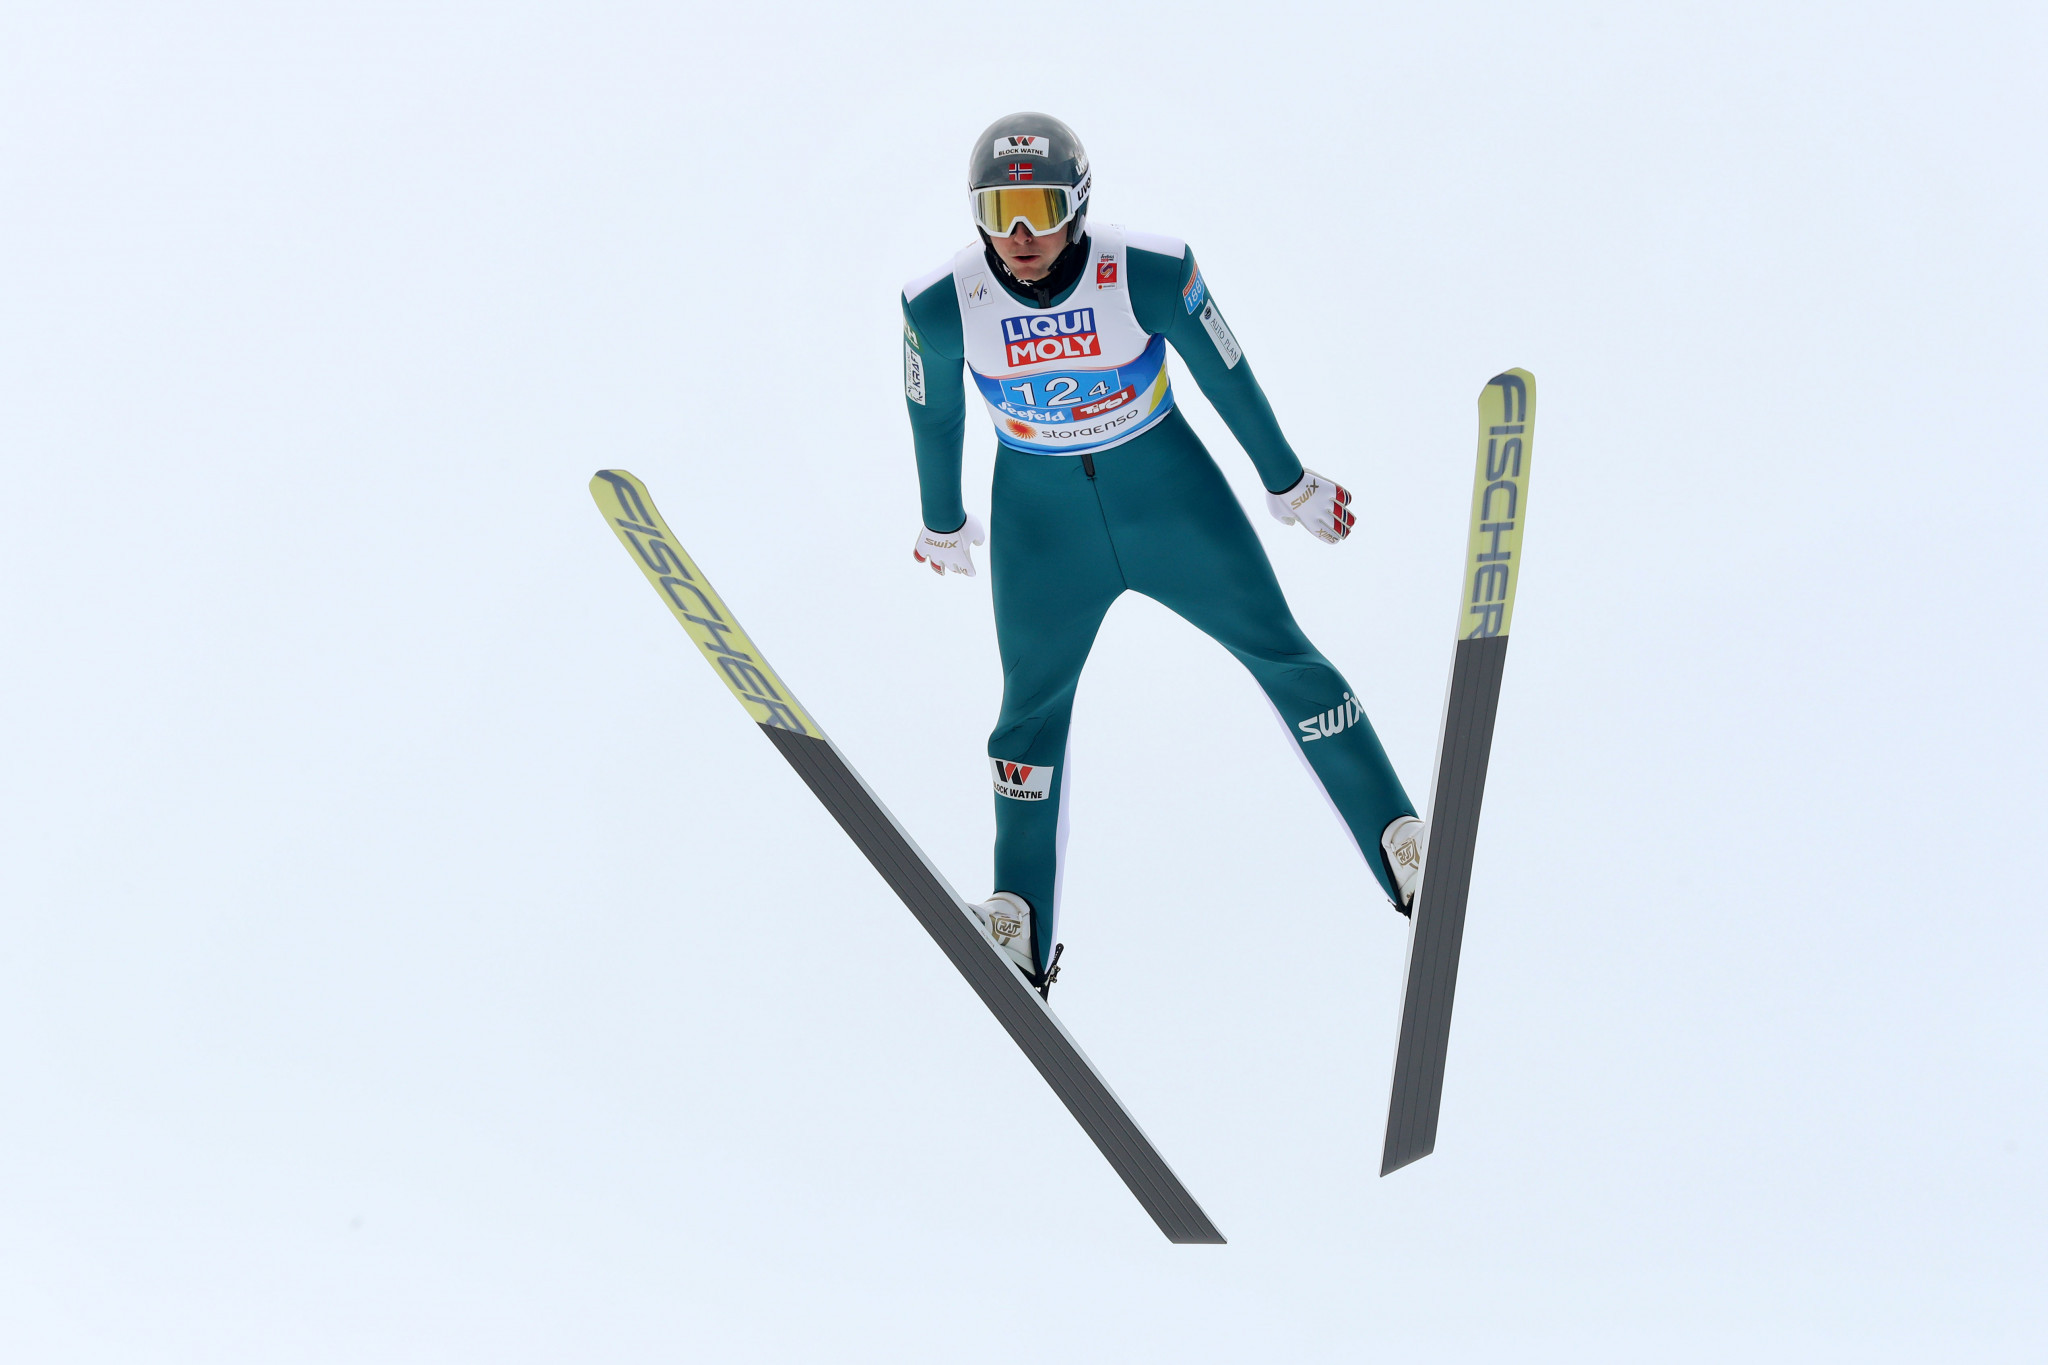 Riiber edges Herola in thrilling finish at FIS Nordic Combined World Cup in Oslo